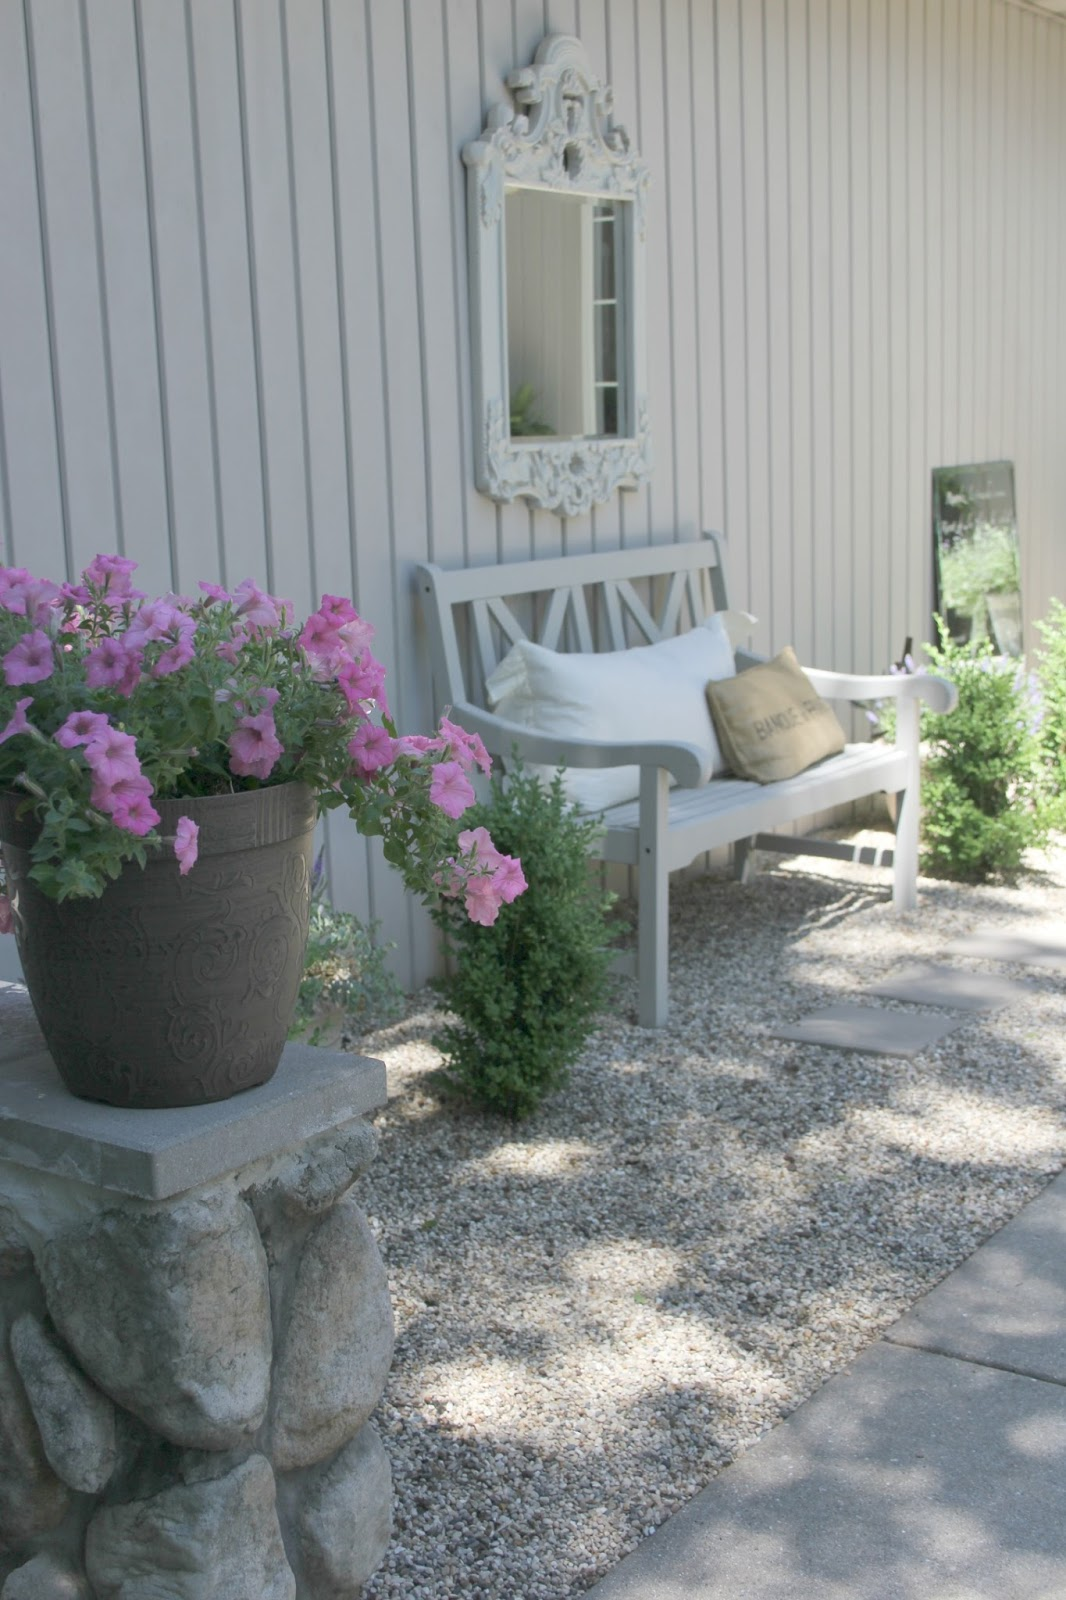 My French courtyard garden with pea gravel, bench, and pink flowers - Hello Lovely Studio.